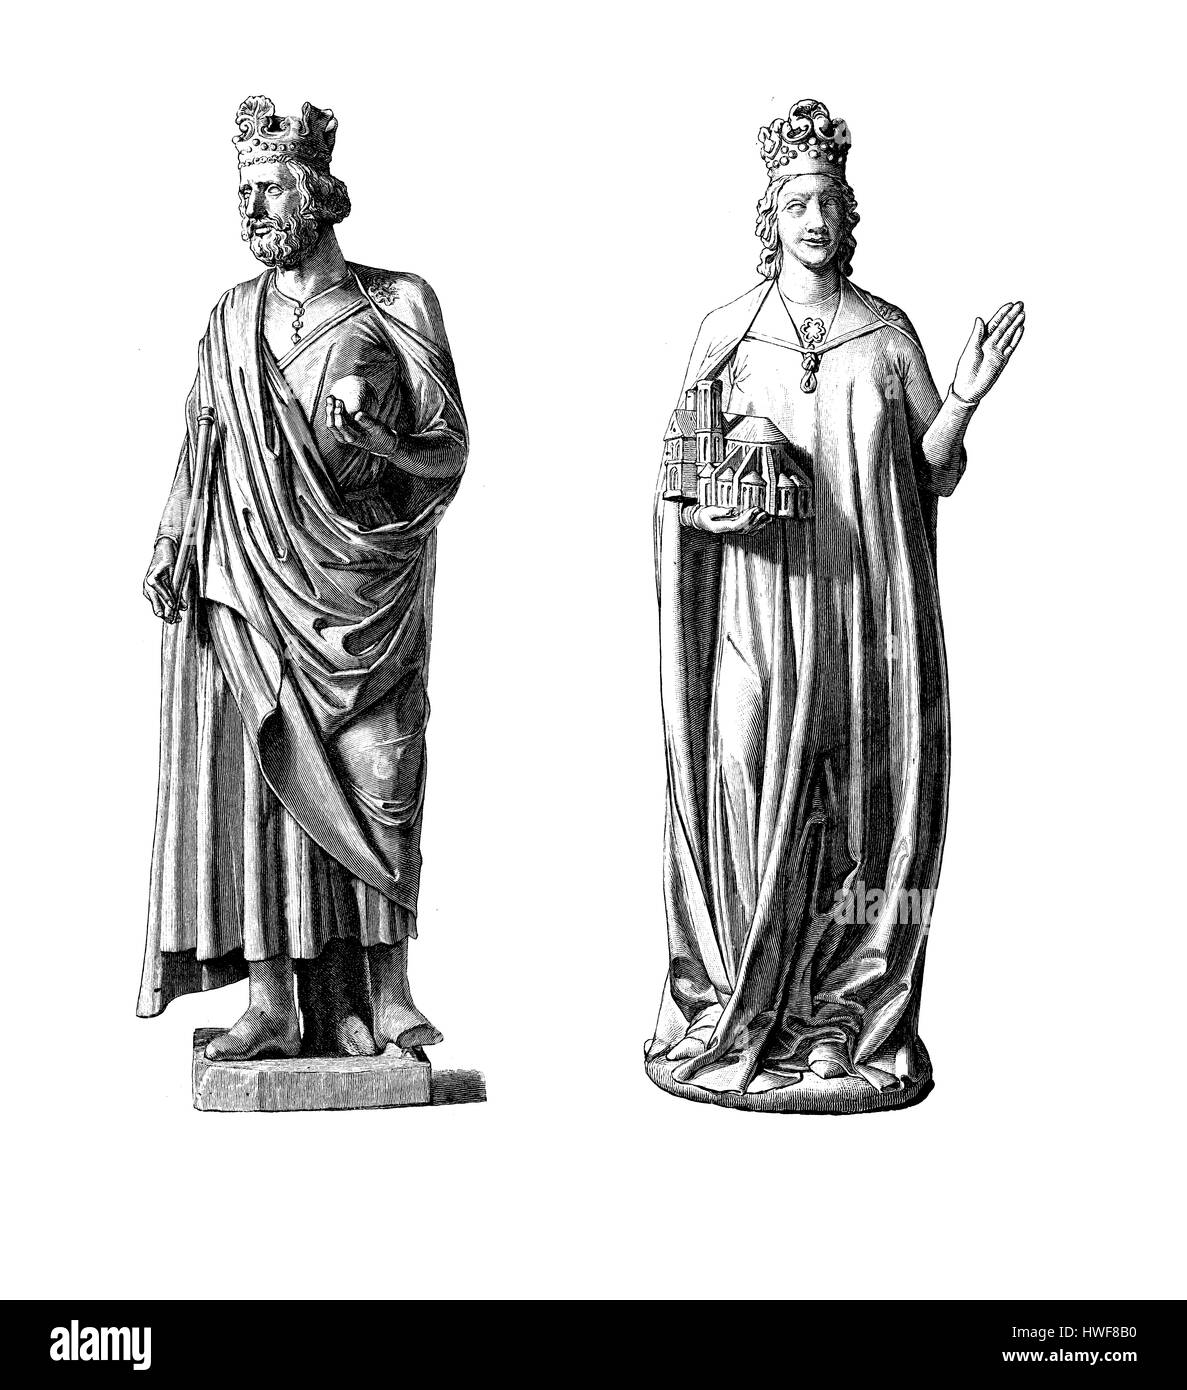 Statues of Henry II, Holy Roman Emperor and his wife Cunigunde of Luxembourg, Bamberg cathedral, XI century - Stock Image